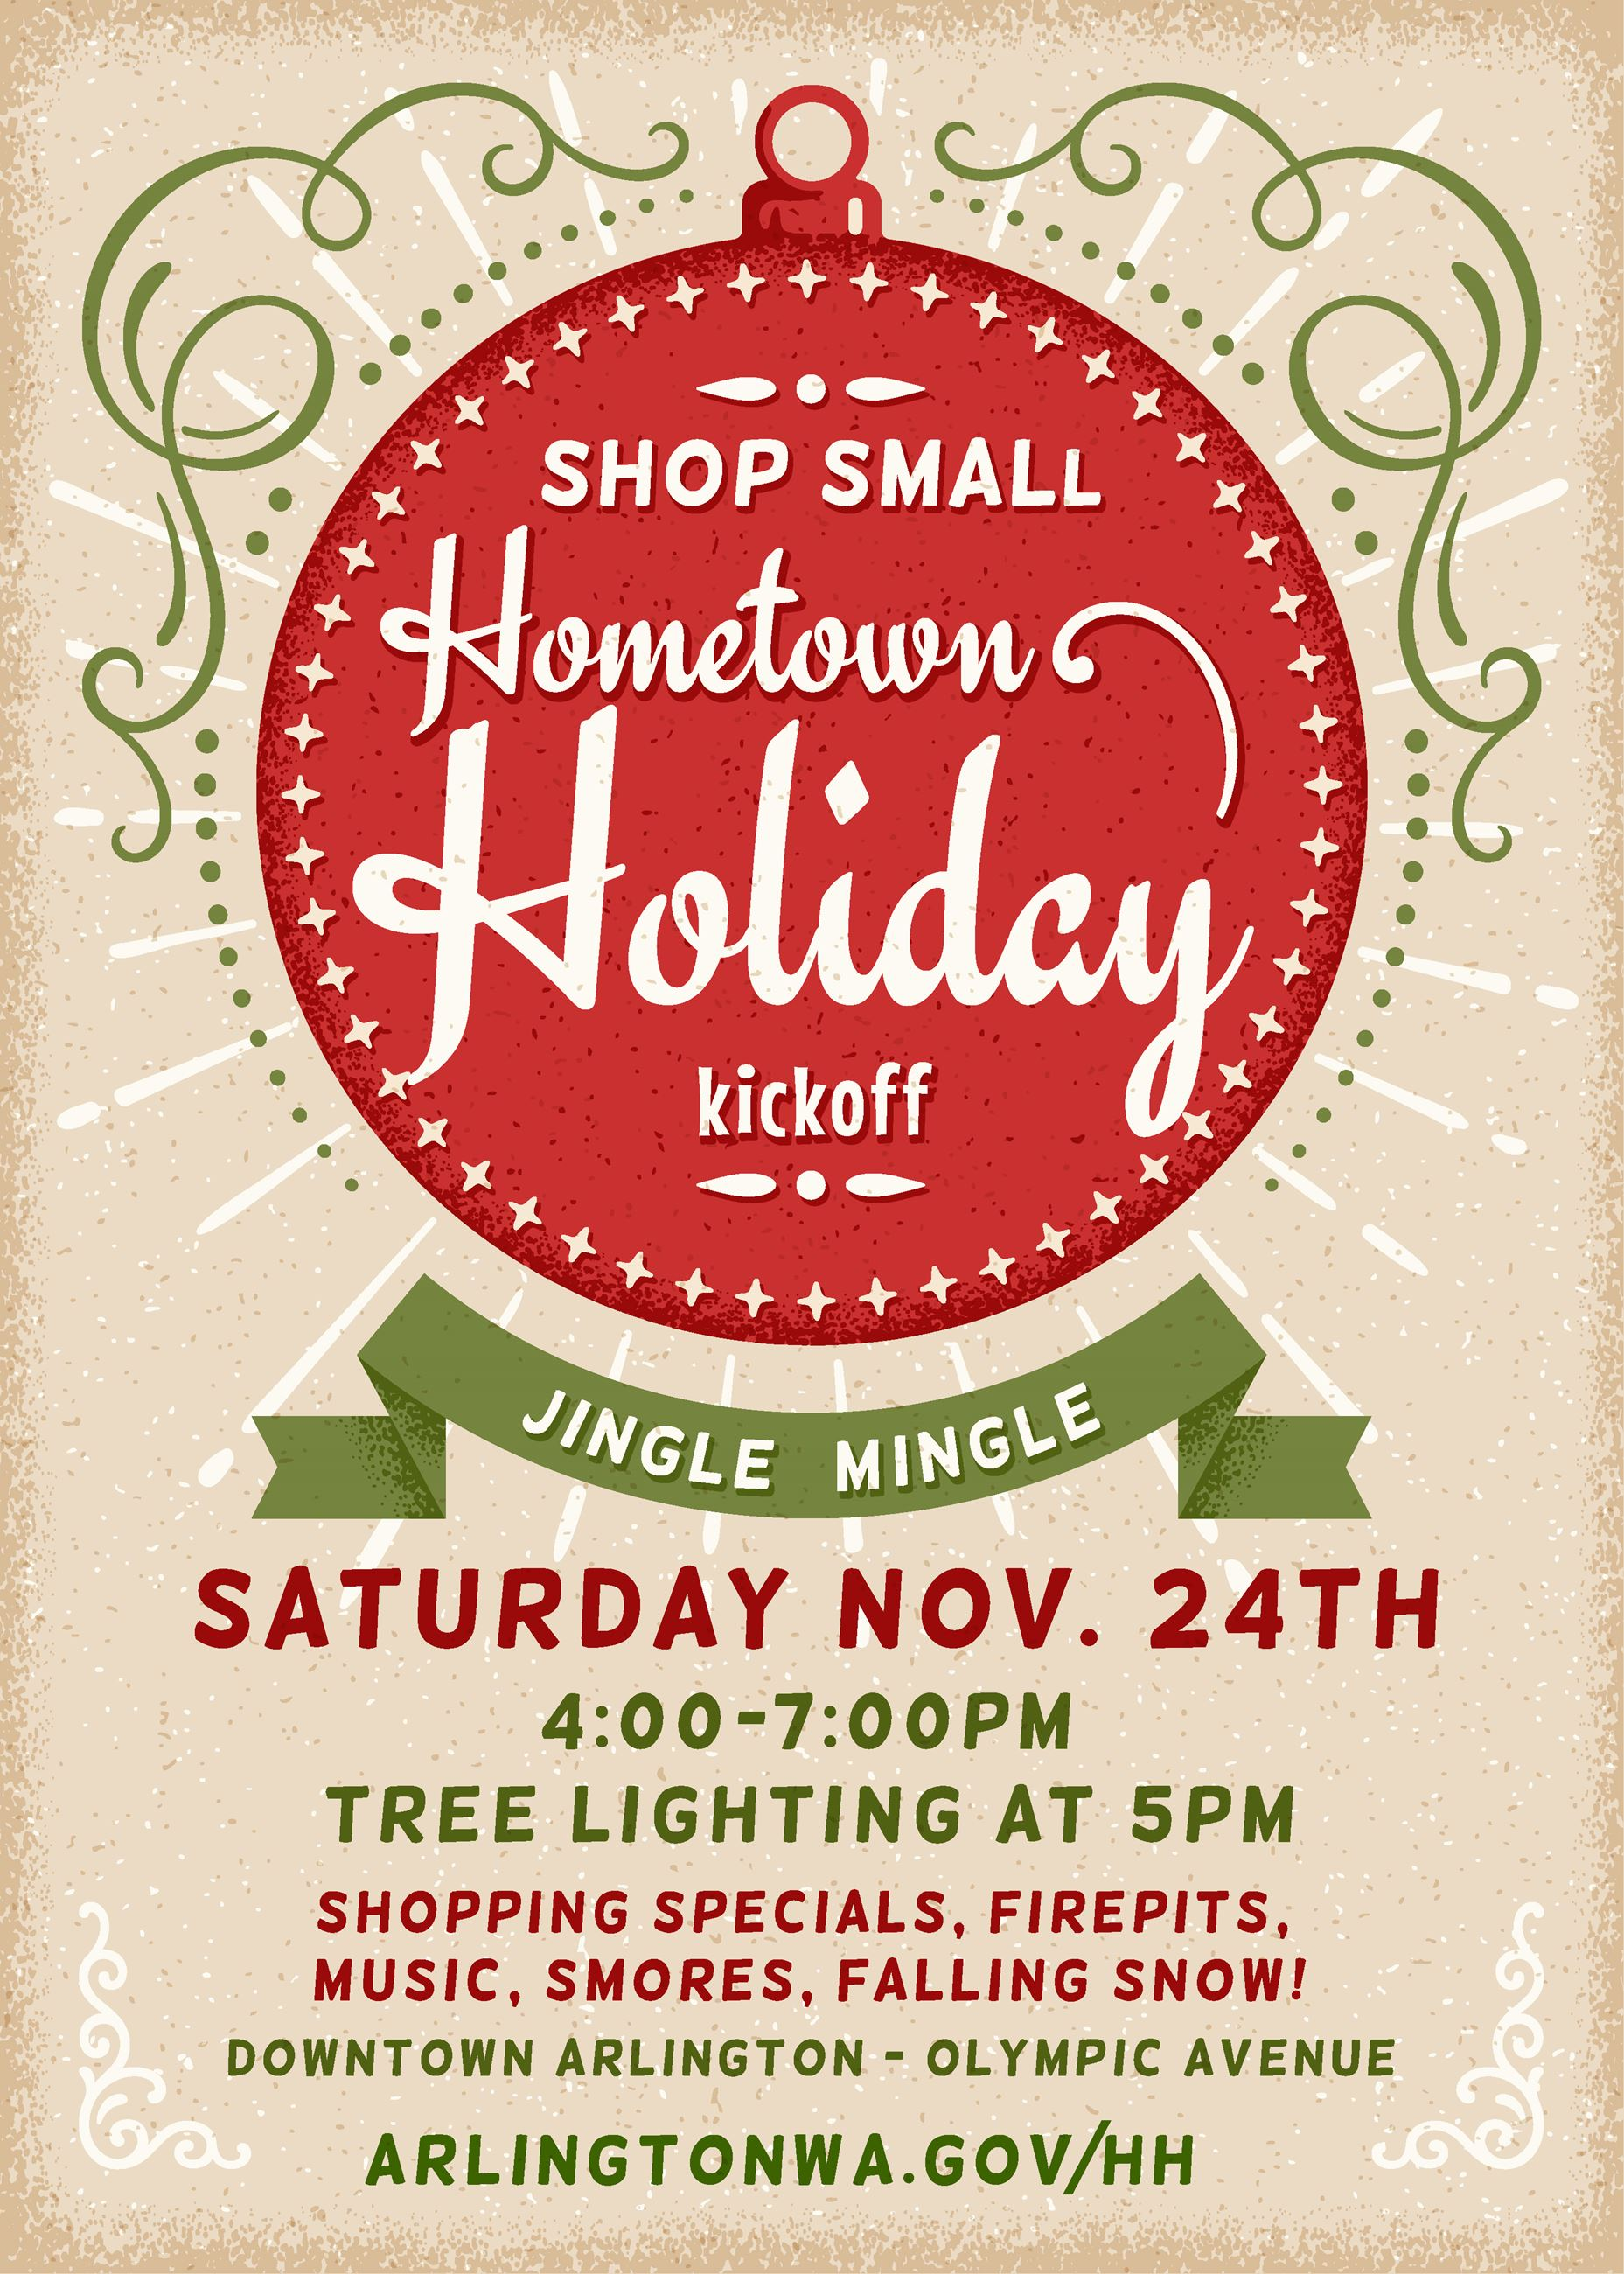 Nov 24 Shop Small Hometown Holiday 4:00-7:00pm. Tree lighting at 5pm.